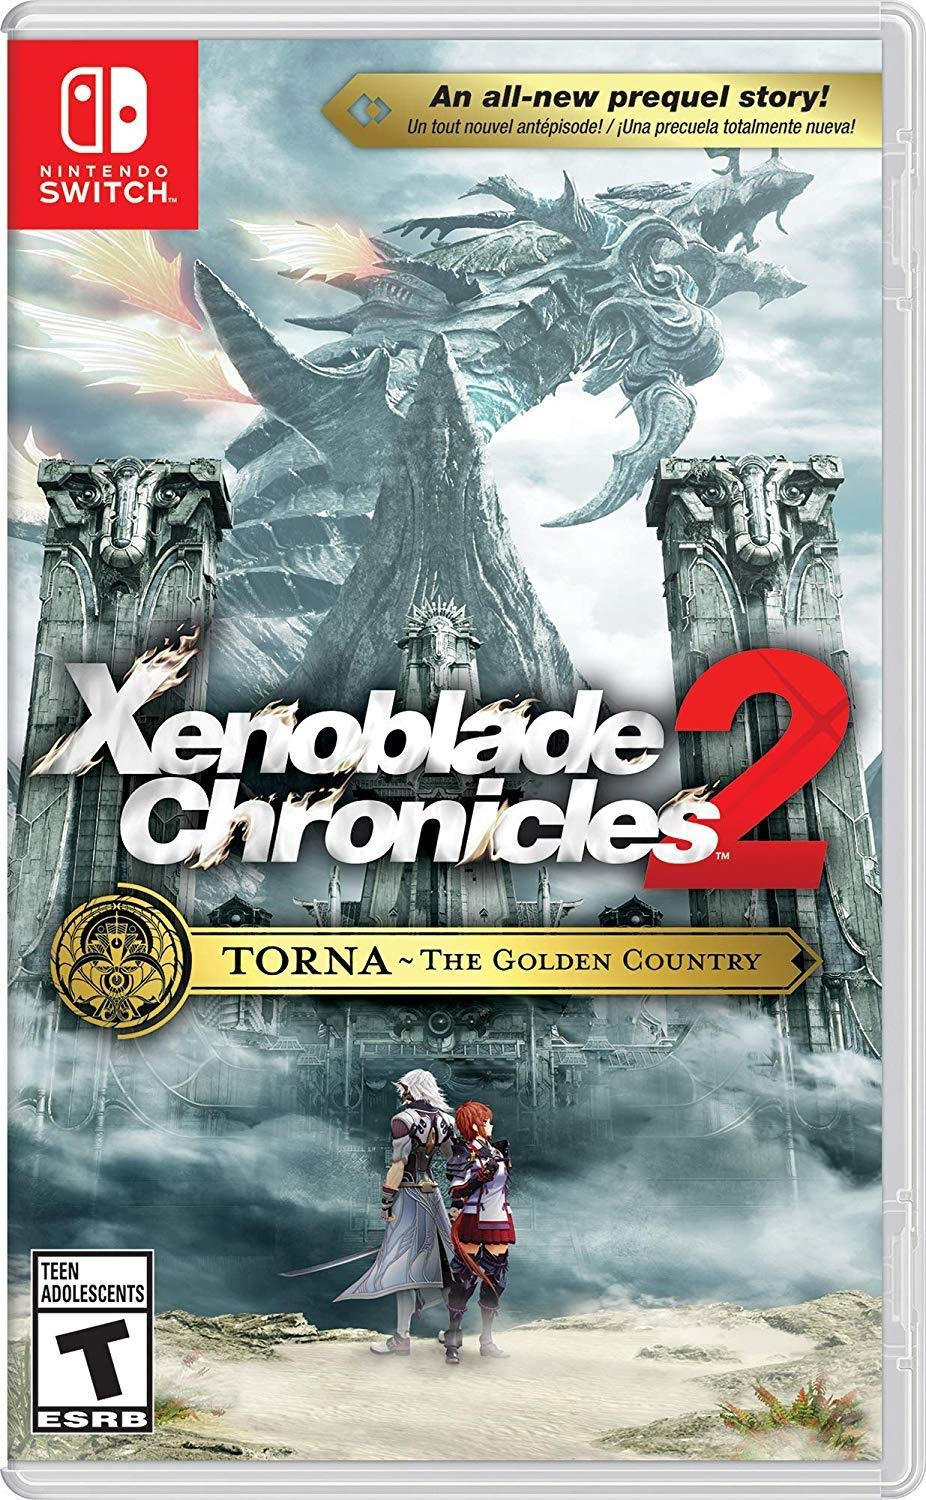 Xenoblade Chronicles 2: Torna ~ The Golden Country